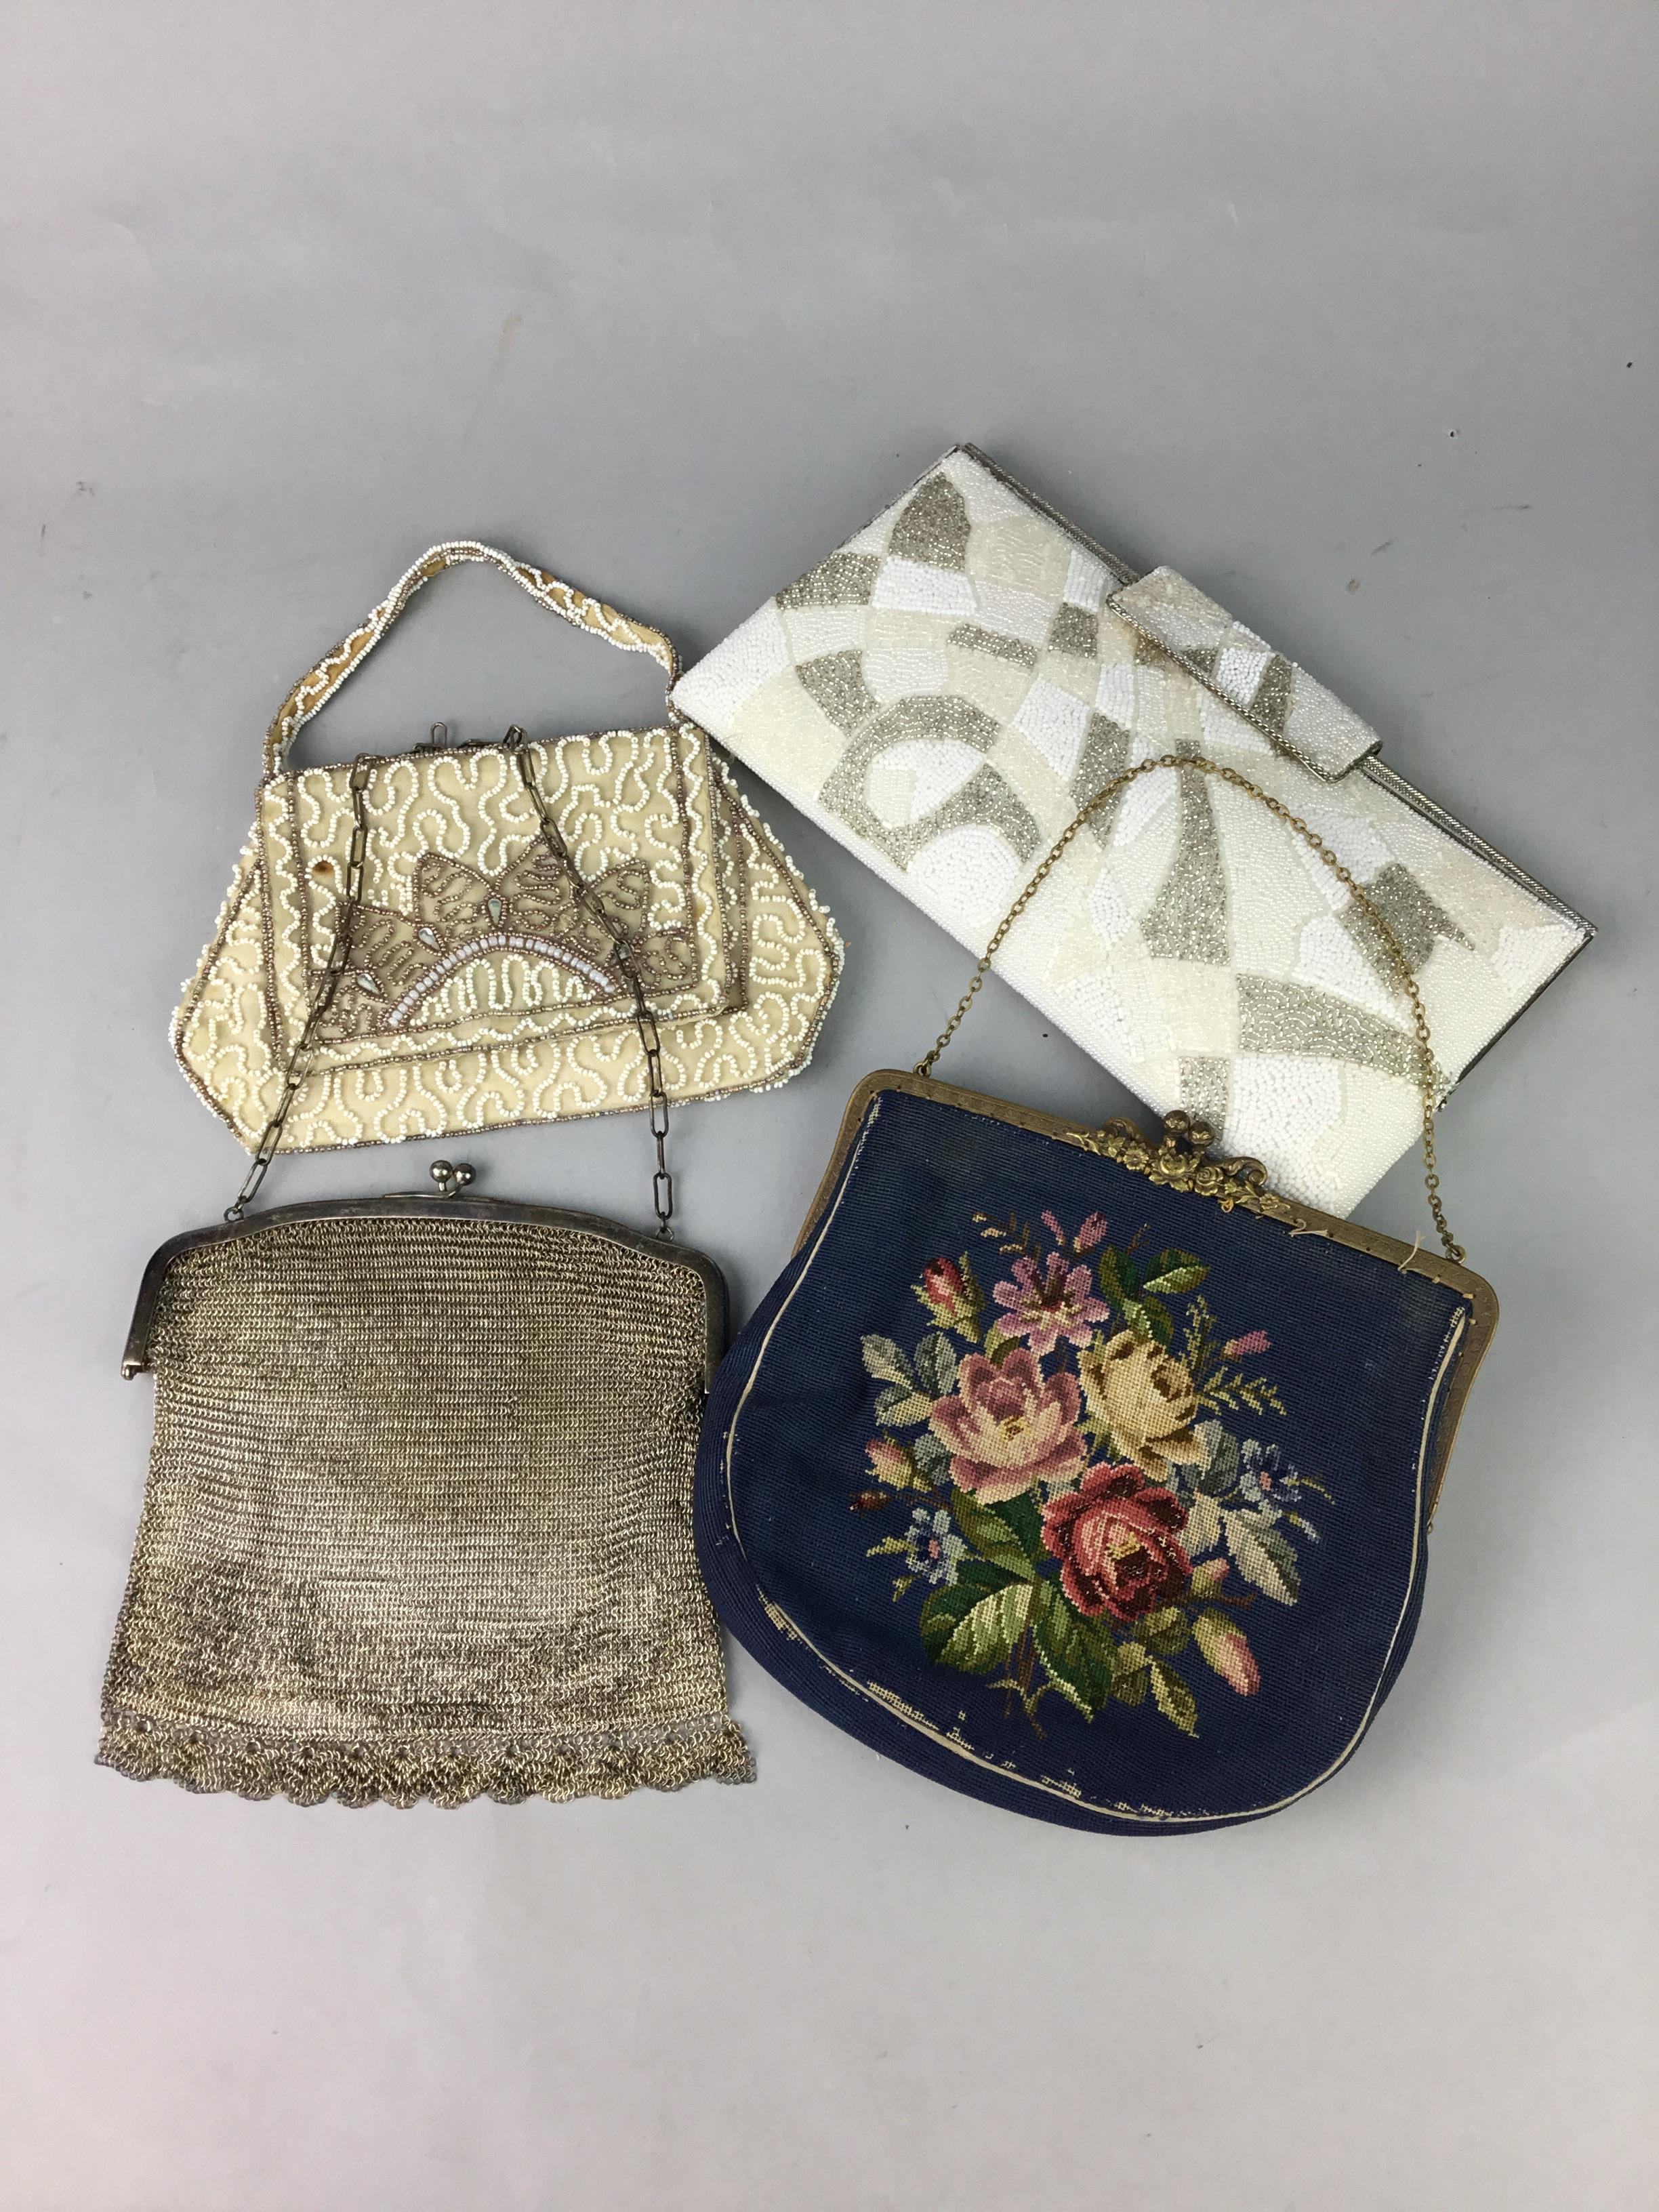 Lot 120 - A SOUTH AMERICAN VINTAGE DESIGNER HANDBAG, OTHER BAGS AND TWO BLOUSES